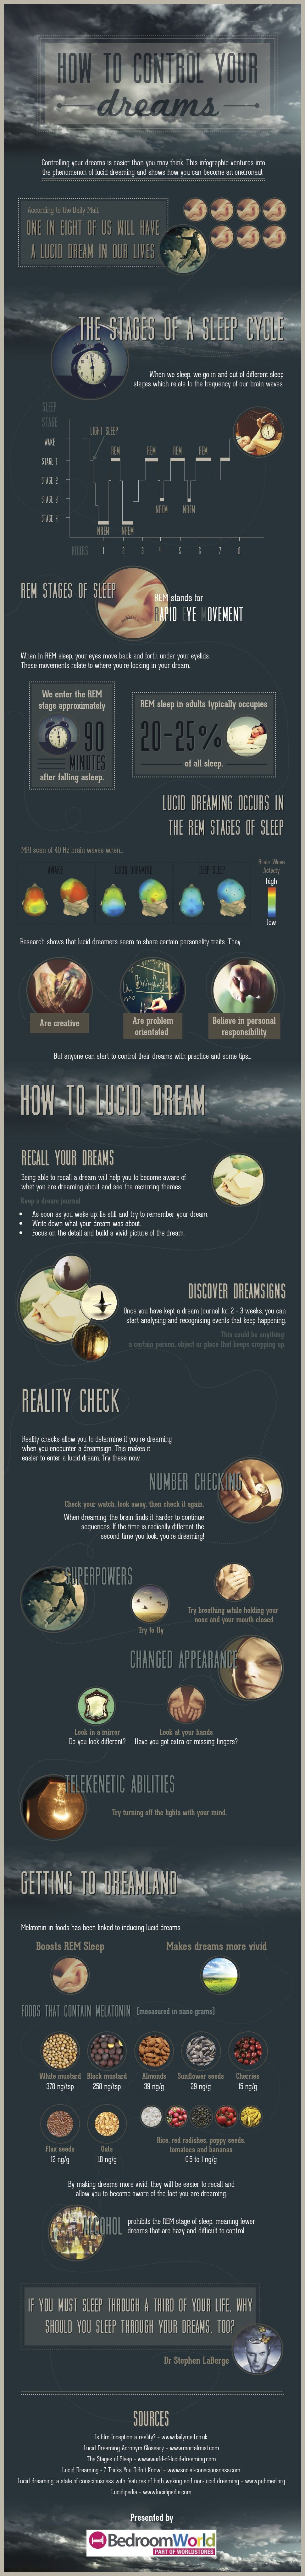 How To Control Your Dreams Control Your Dreams Lucid Dreaming Dream Journal